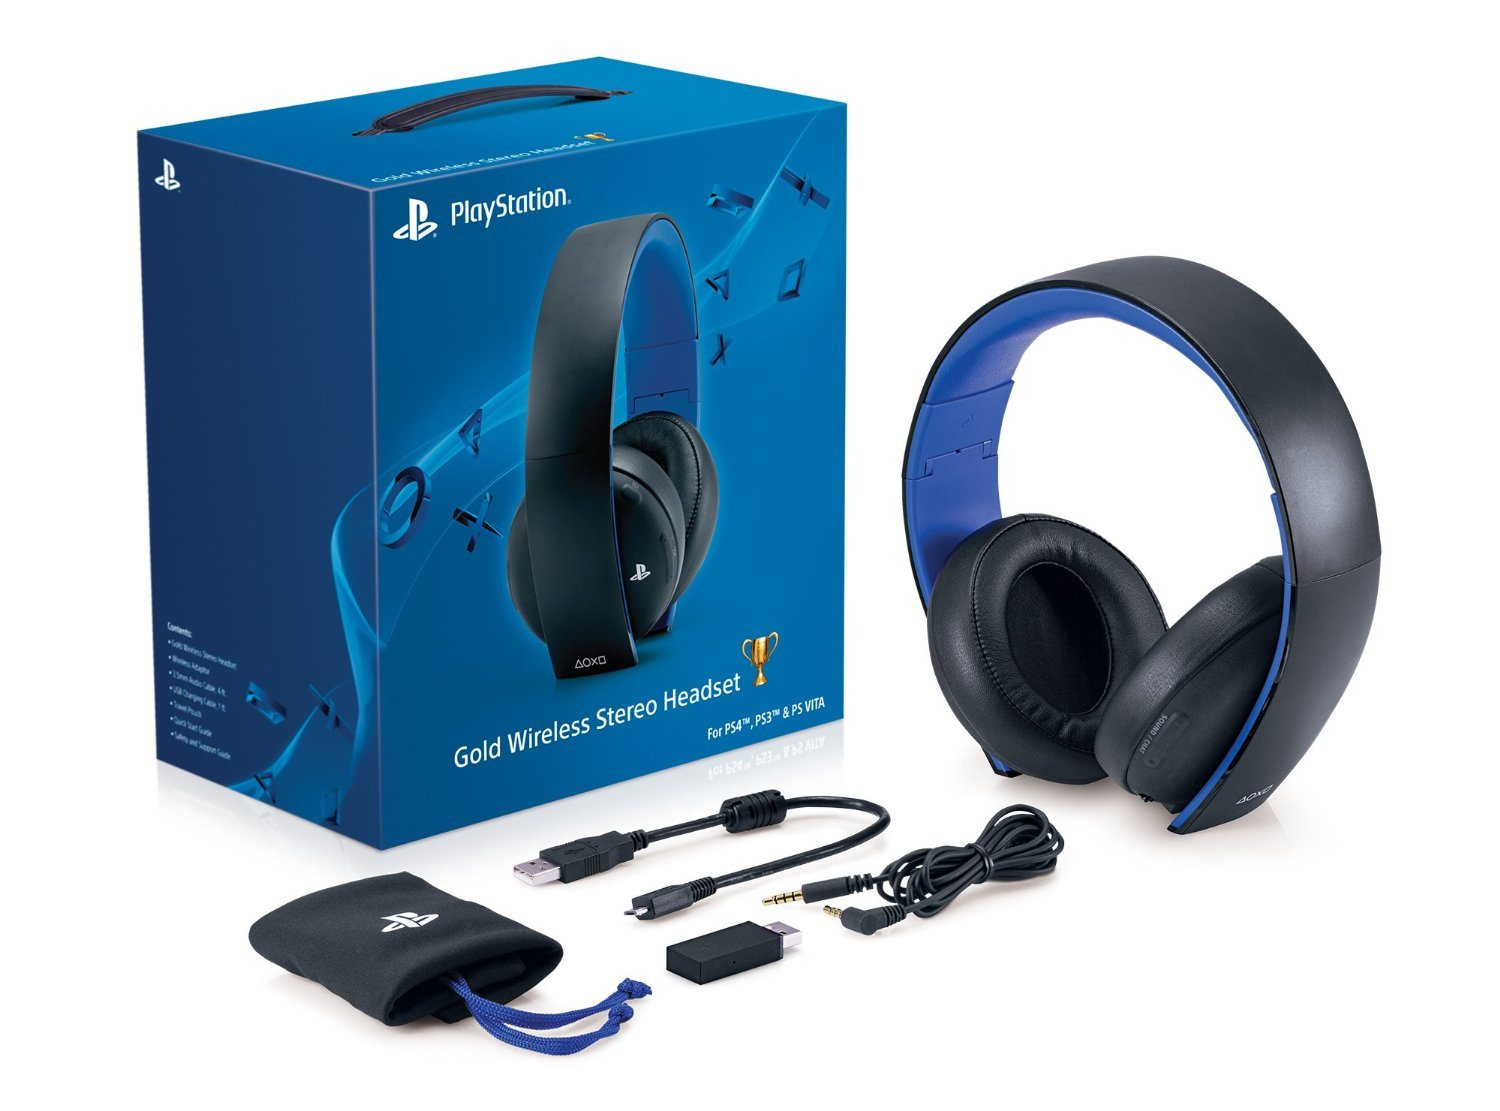 Sony - Gold Wireless Stereo Headset for PlayStation PS4 PS3 & VITA ...